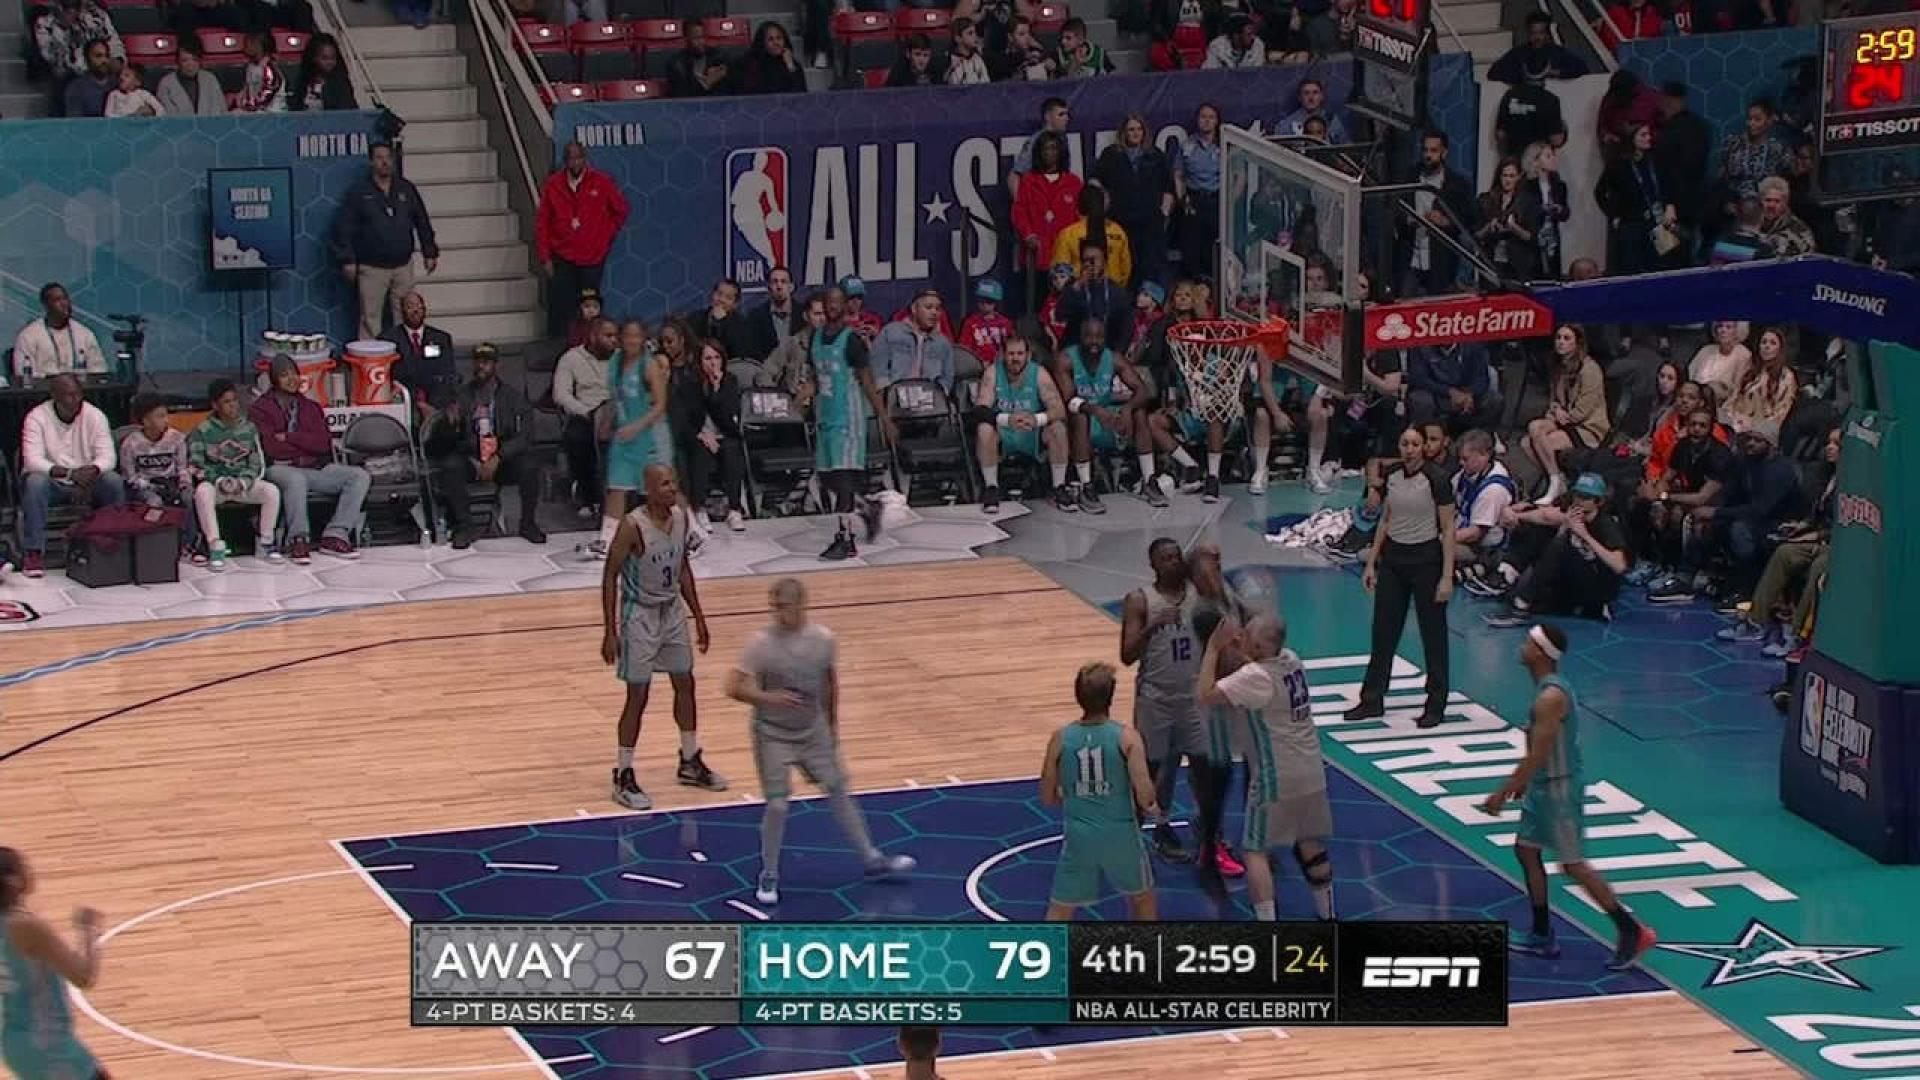 nba all star game 2019 download video